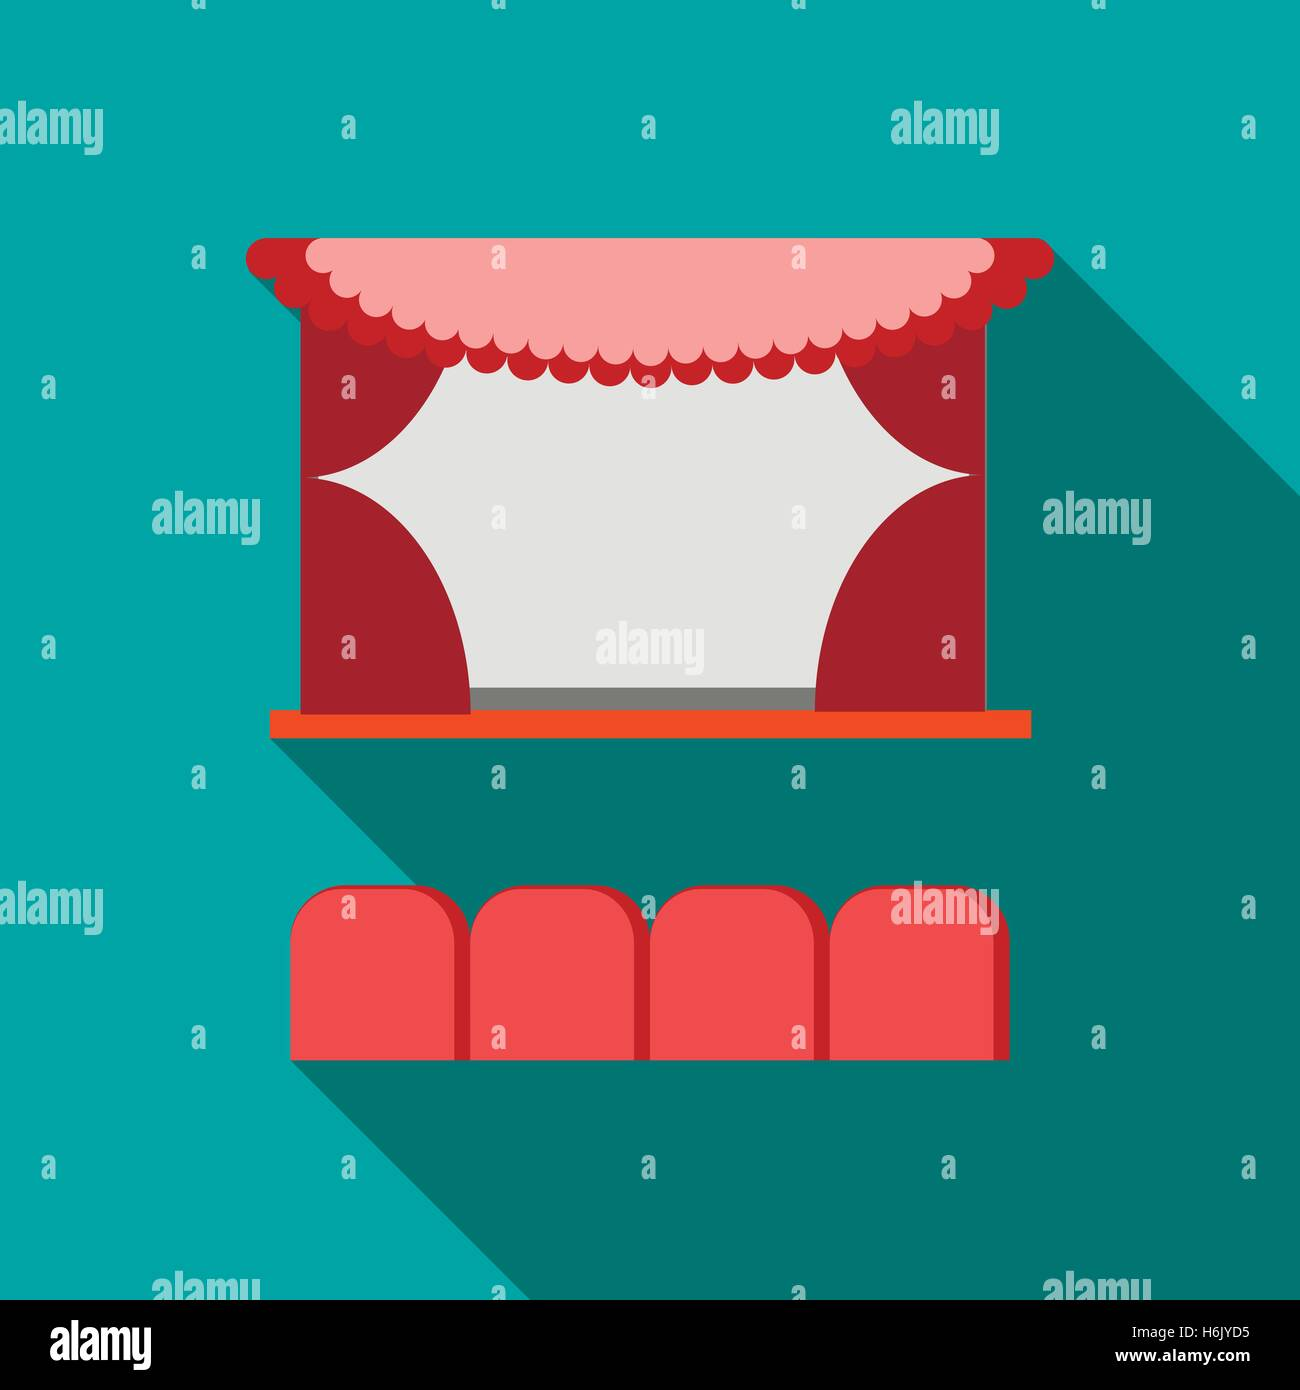 Cinema stage with red curtains icon, flat style - Stock Vector